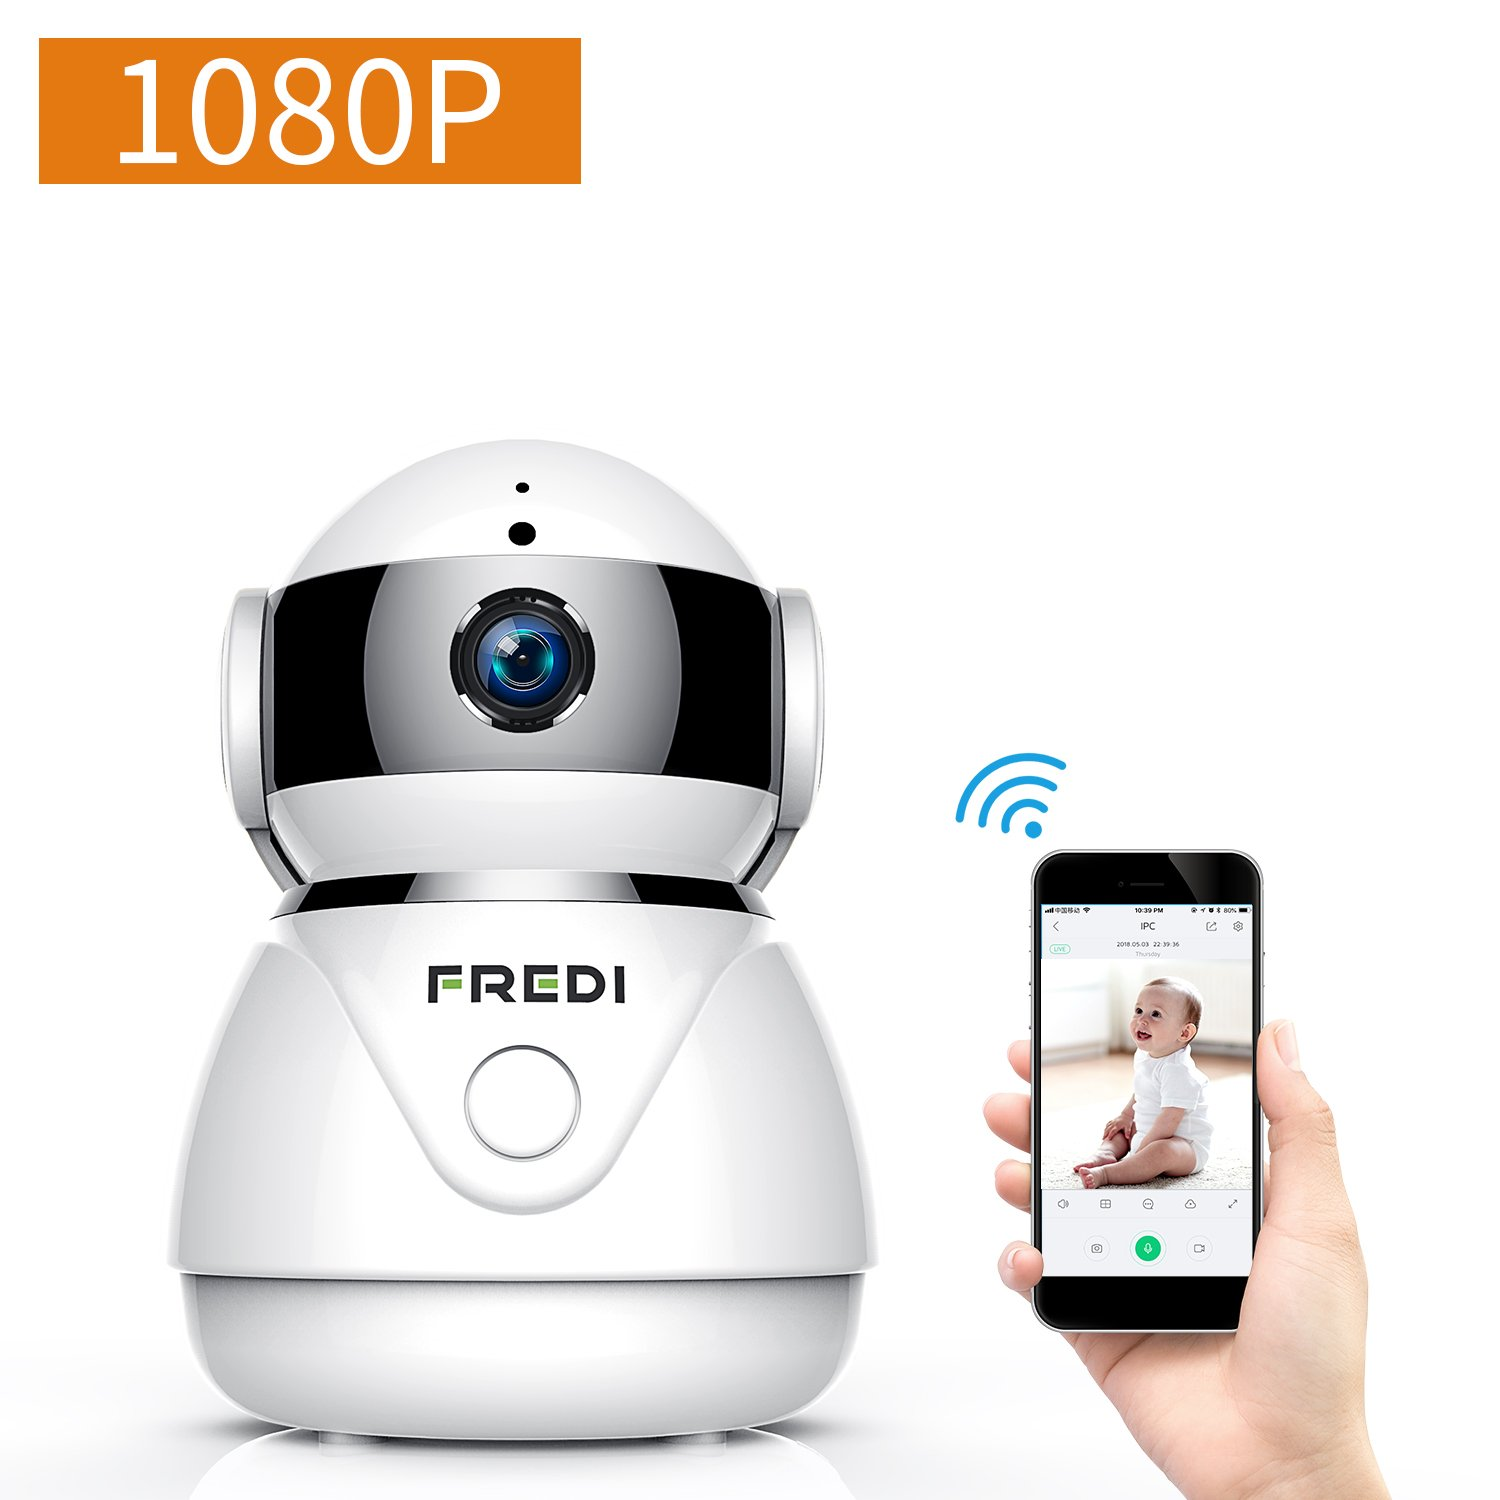 FREDI Wireless Camera Baby Monitor 1080P HD WiFi Security Camera Two-Way Talking Work Alexa Echo,Infrared Night Vision,Pan Tilt,P2P WPS Ir-Cut Nanny ip Camera Motion Detection-Cloud Service